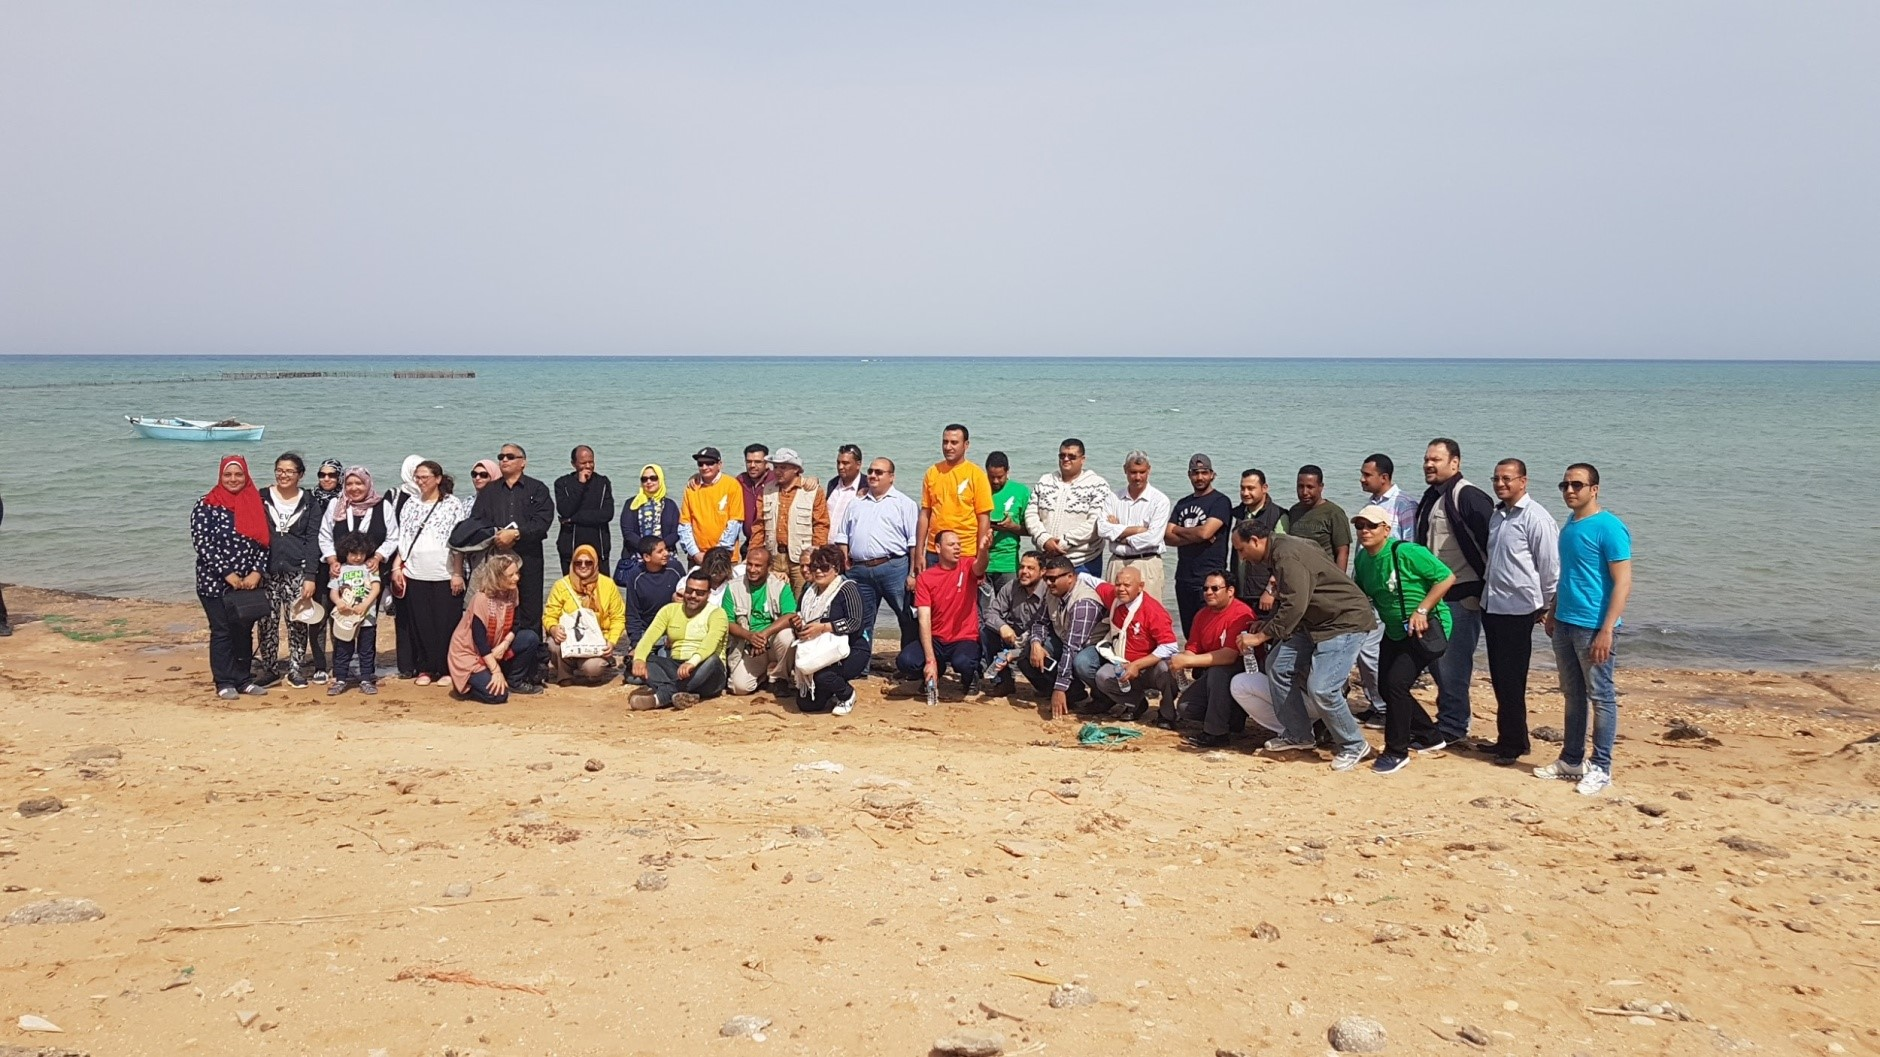 Group photo of the participants at WMBD celebration in Egypt